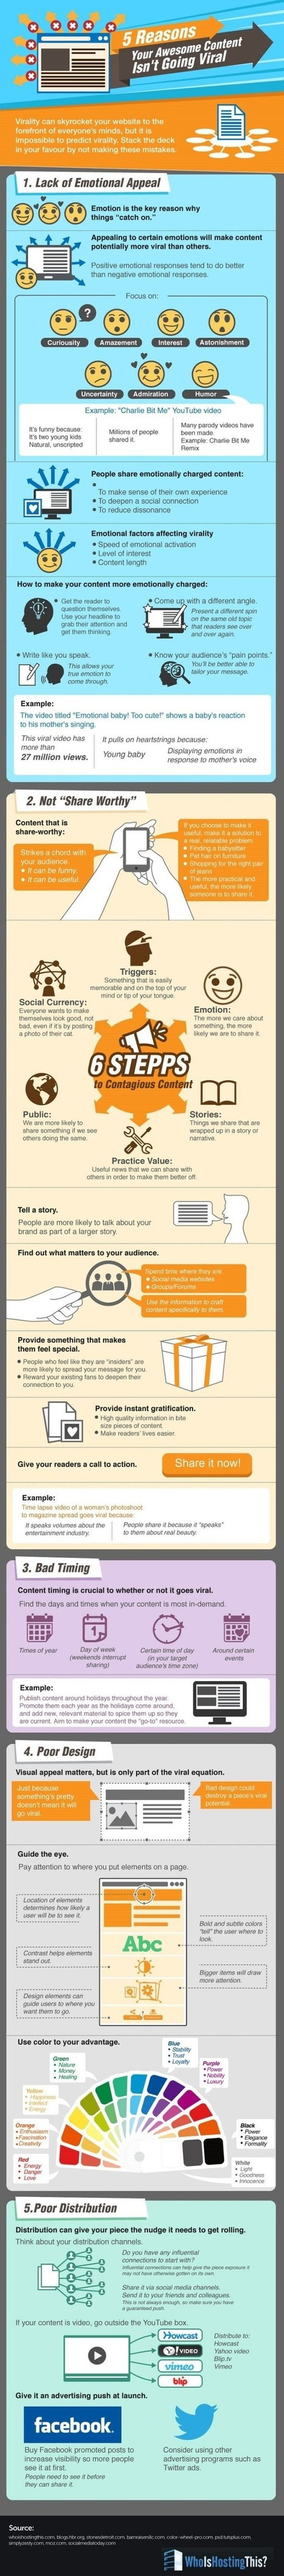 Check These 5 Tactics to Make Your Content Go Viral #infographic | Content Marketing and Curation for Small Business | Scoop.it